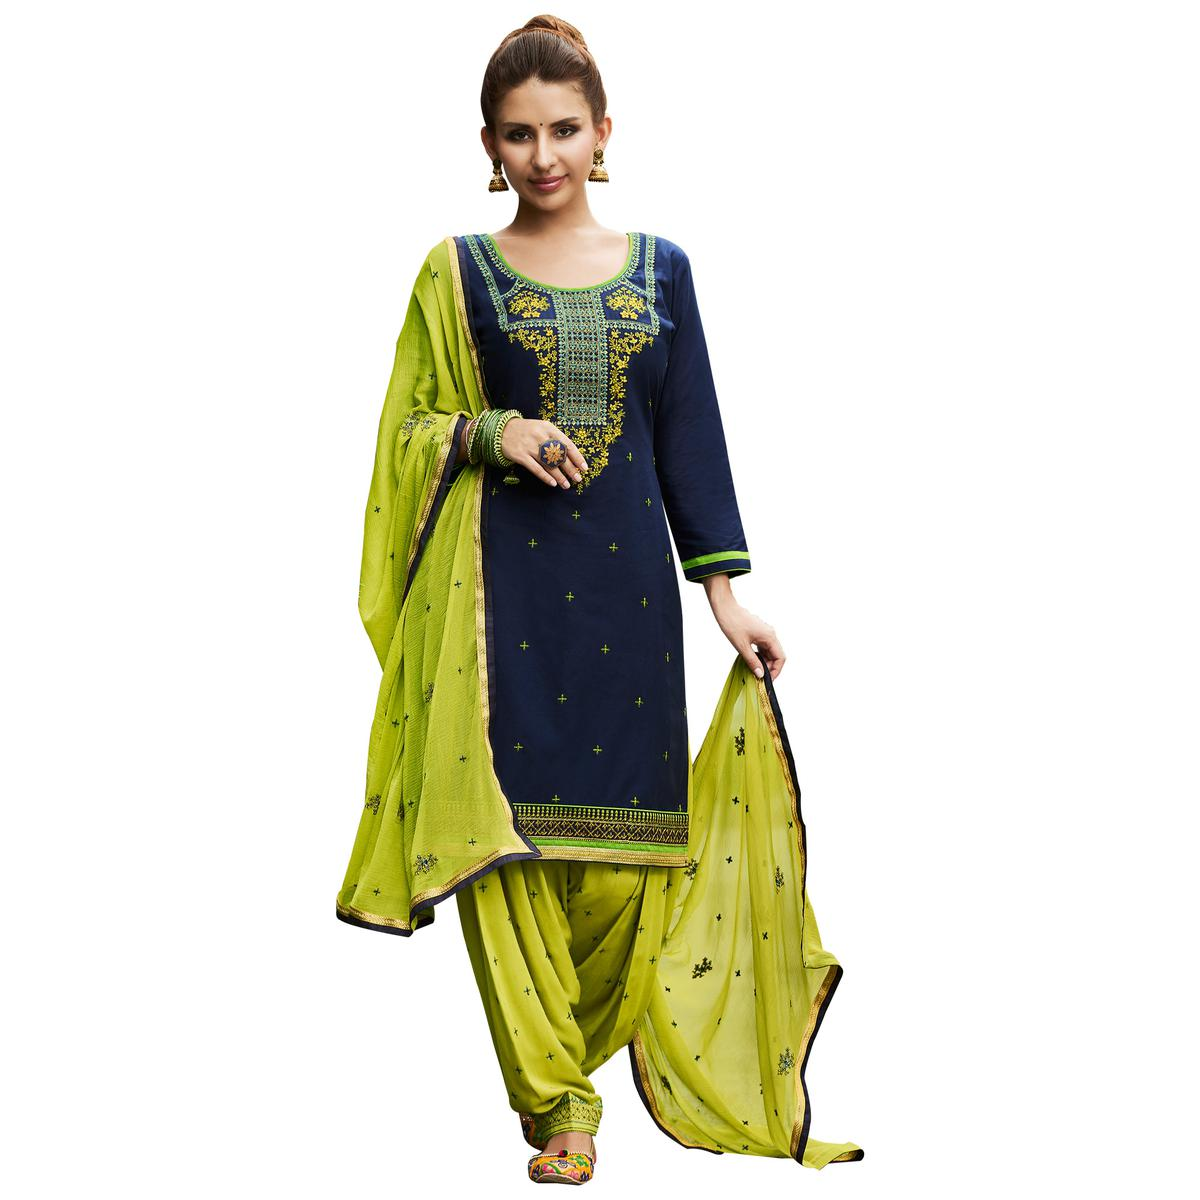 Desiring Navy Blue Colored Partywear Embroidered Cotton Patiyala Dress